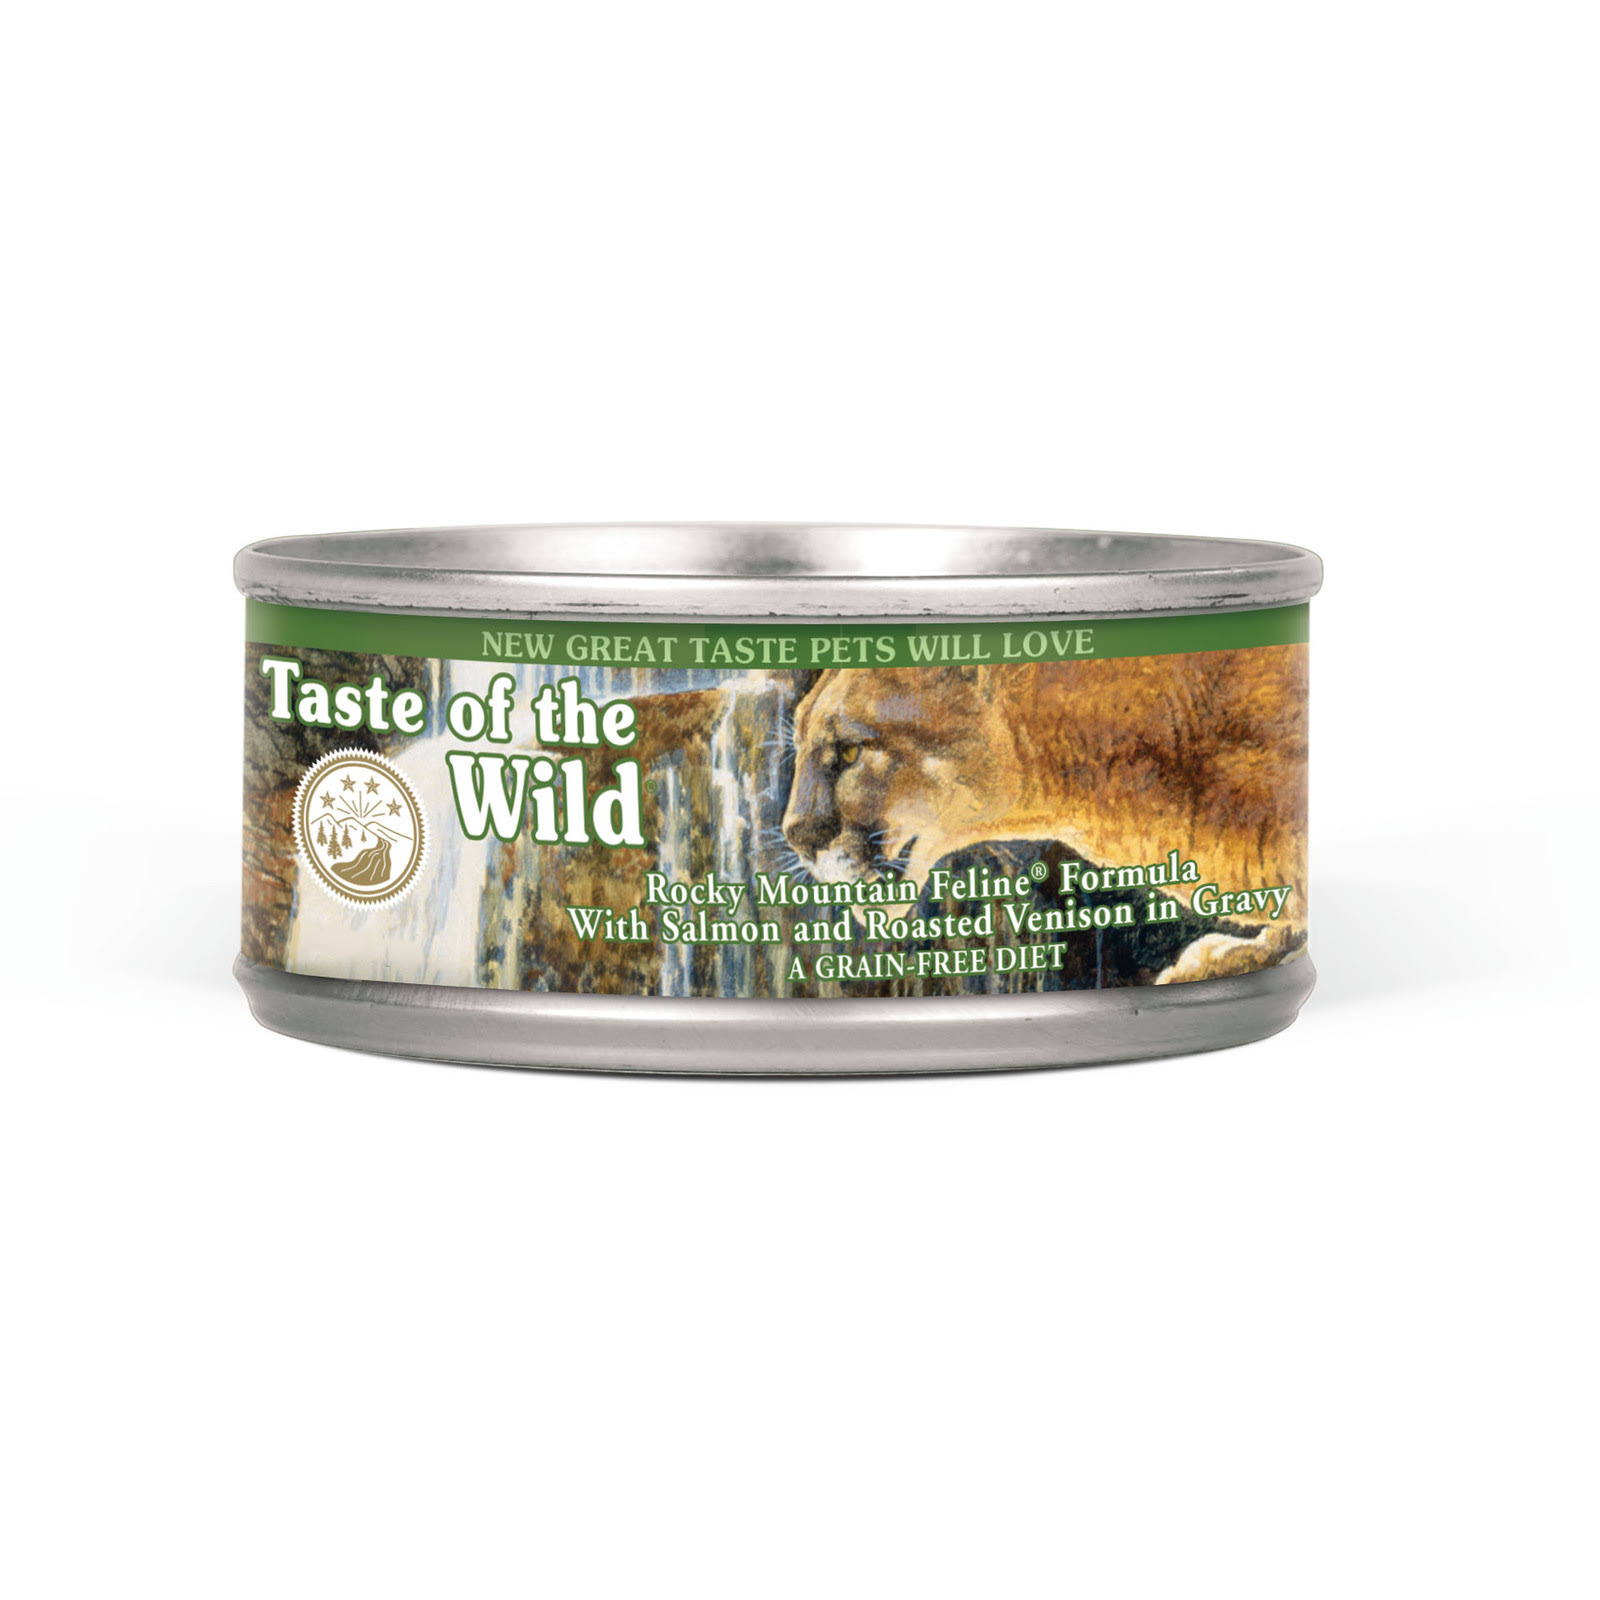 Taste of the Wild Cat Food - Rocky Mountain